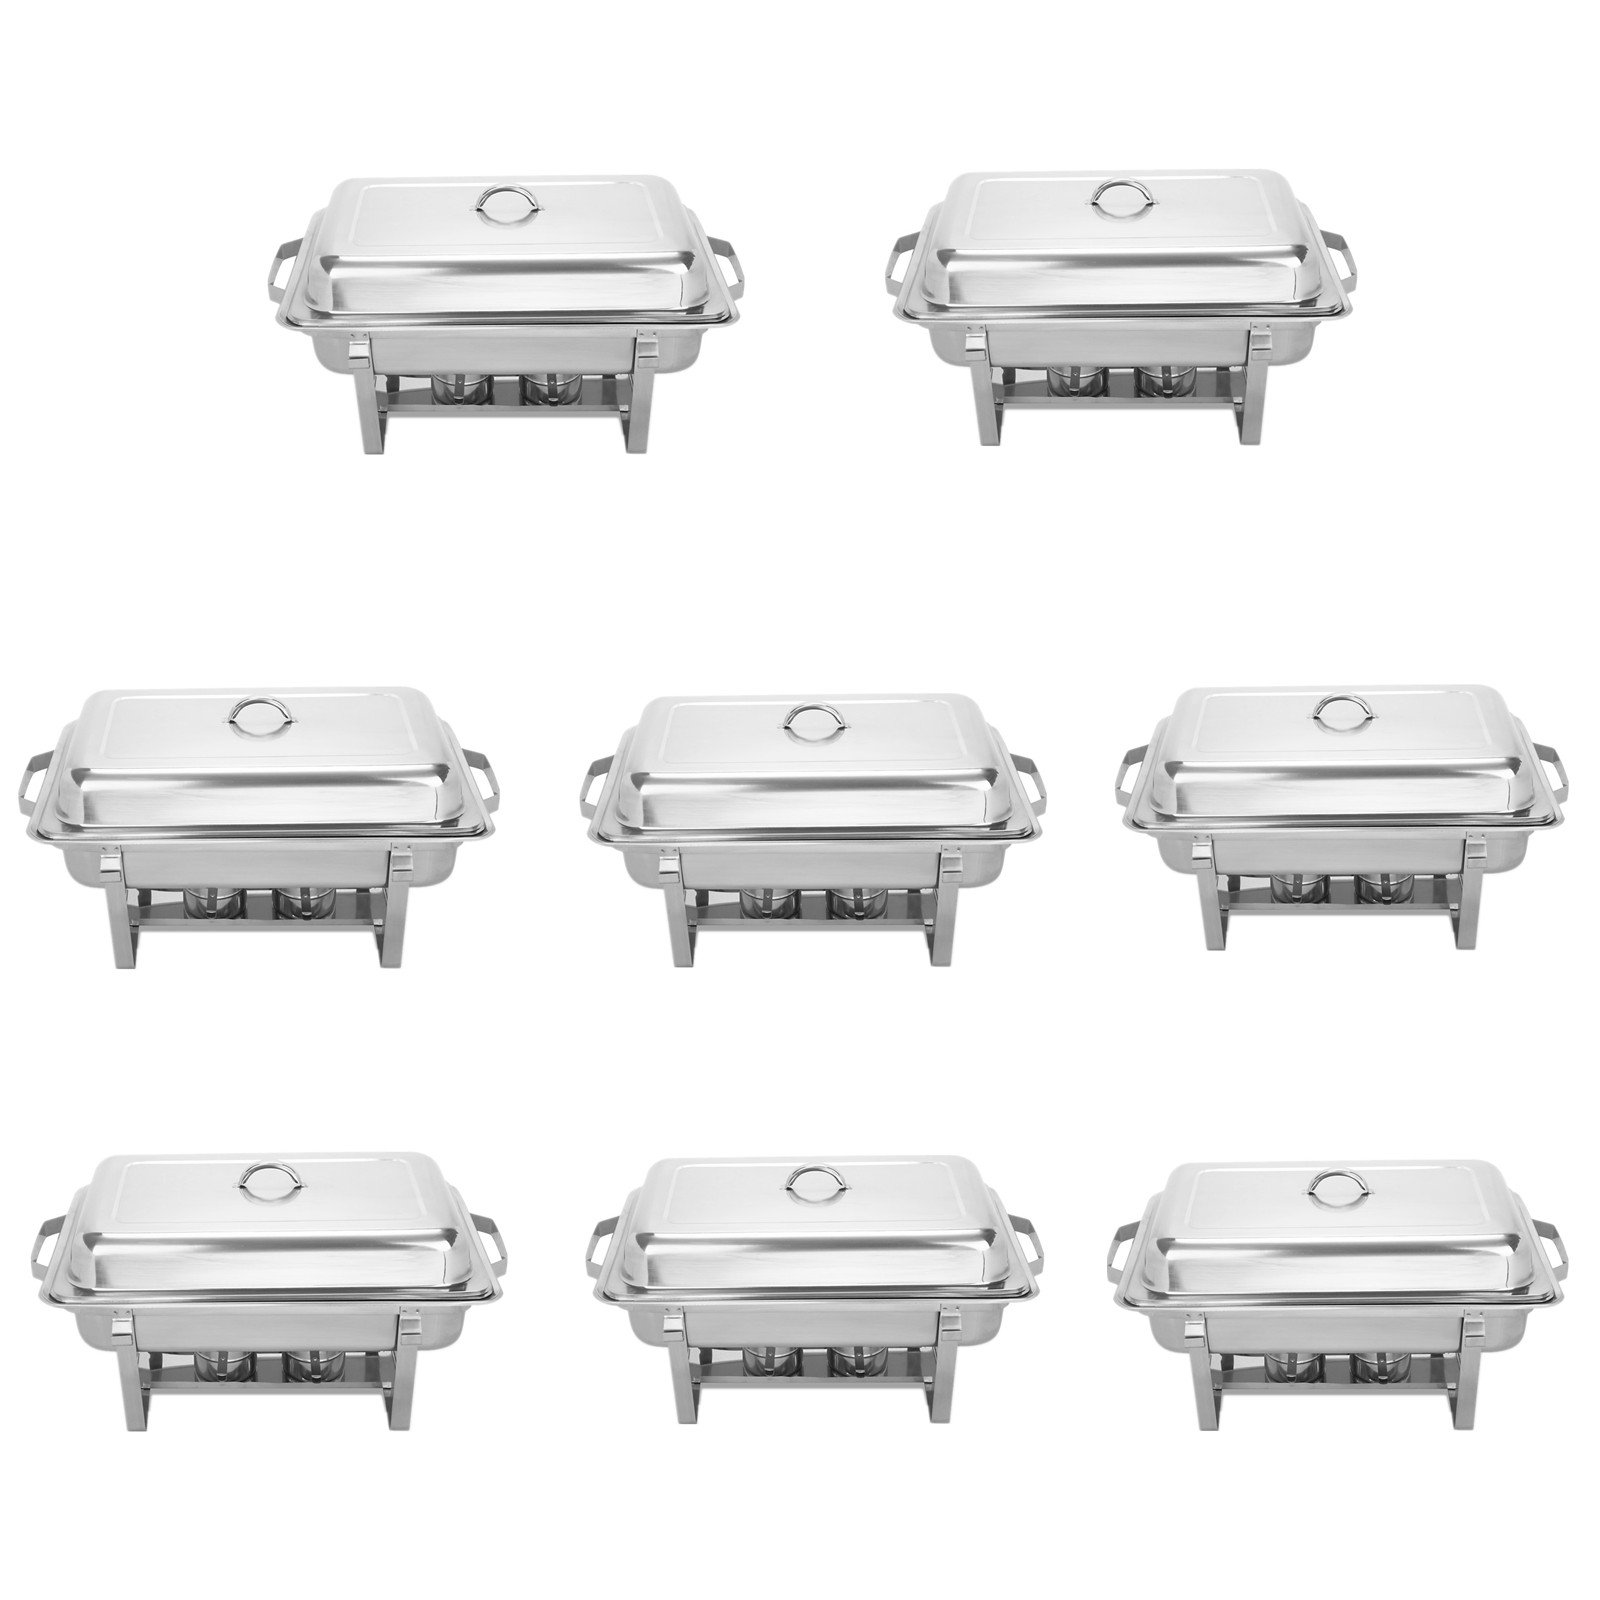 BestEquip Chafing Dish Set 8 Pack 8 Quart Chafer Dish Set Full Size Stainless Steel Chafer with Foldable Frame (pack of 8)